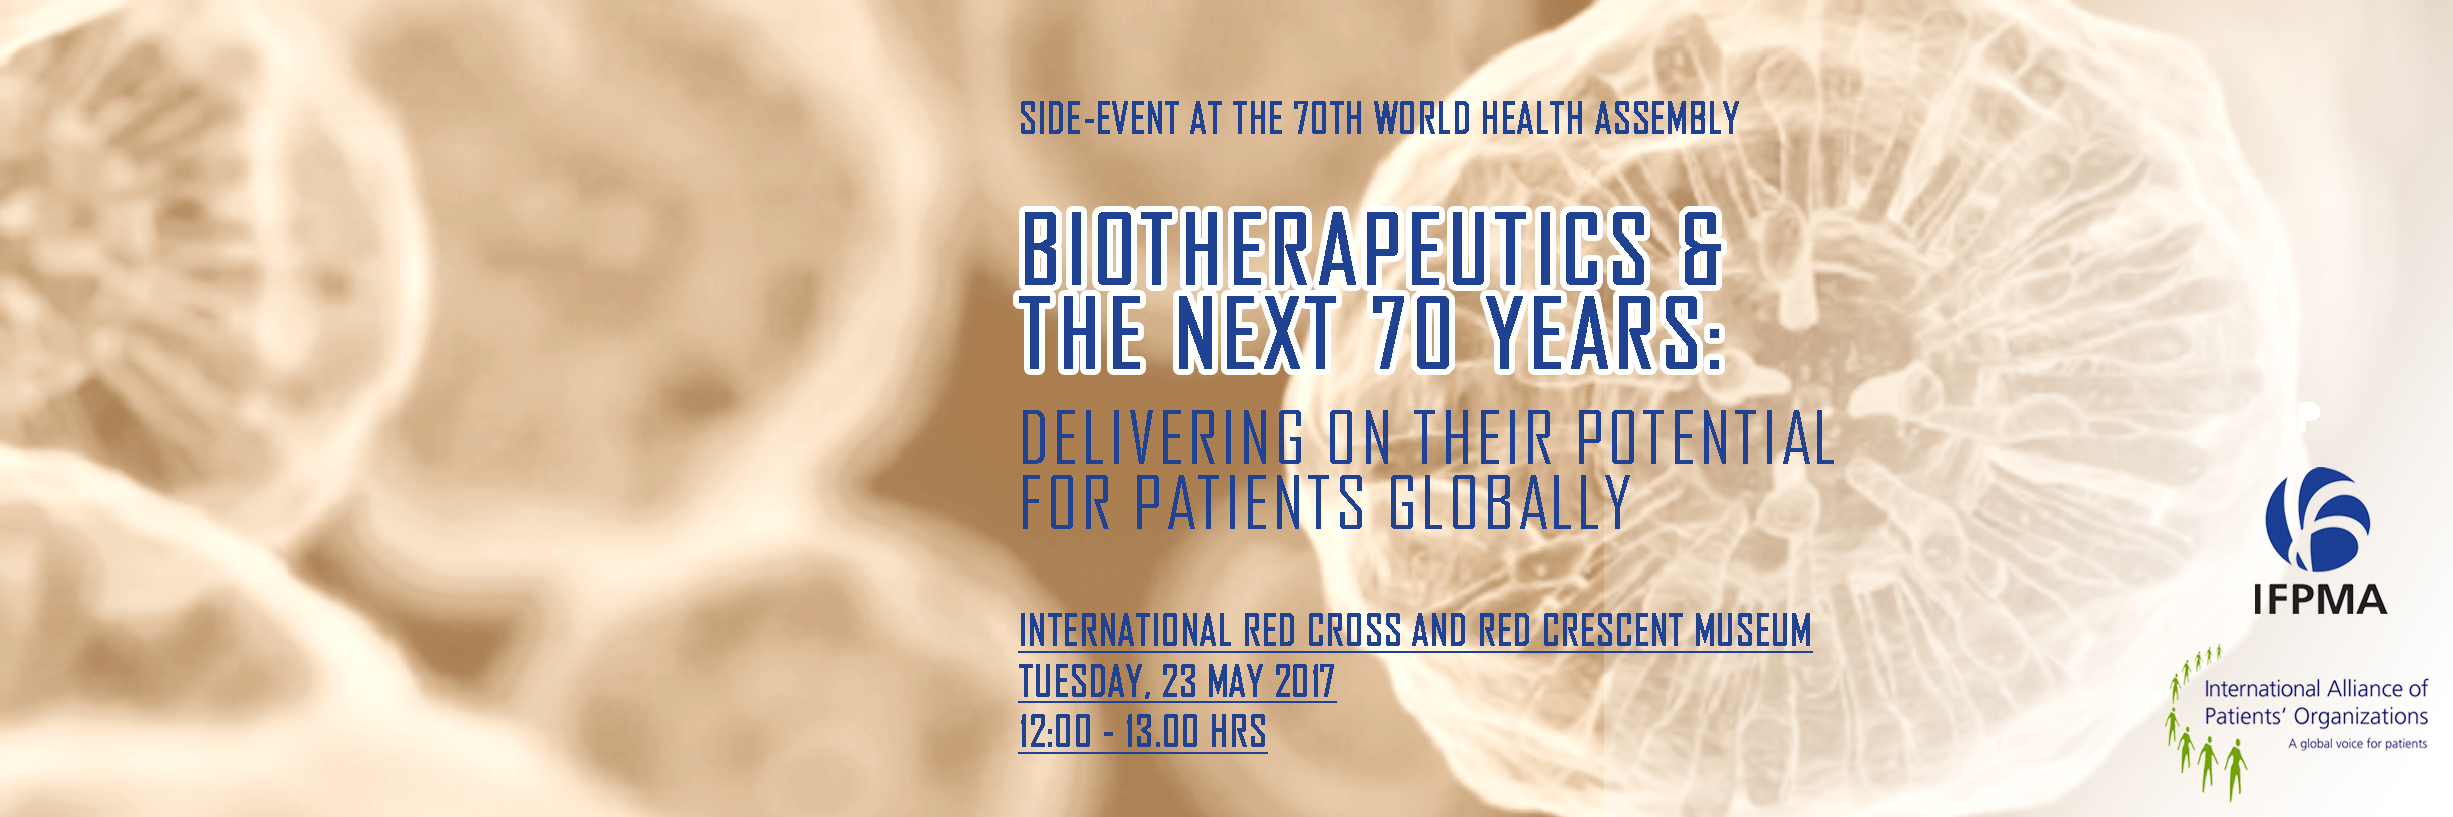 Biotherapeutics & the Next 70 Years: Delivering on their Potential for Patients Globally